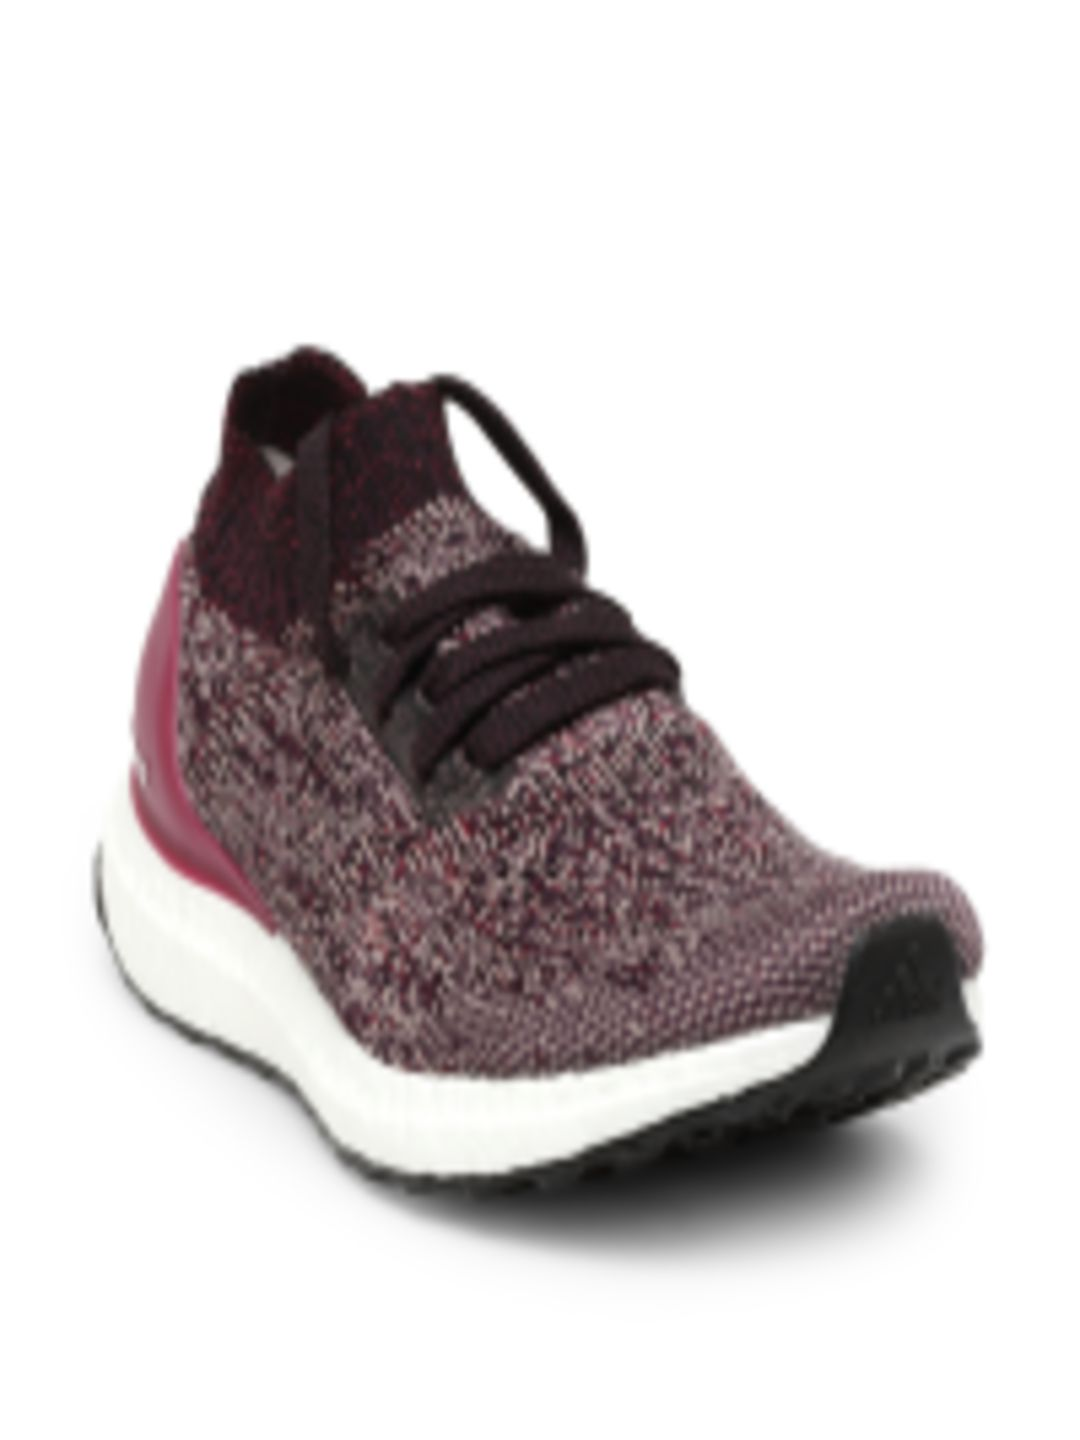 7e6717d4bdc6bb Buy Adidas Women Burgundy Ultraboost Uncaged Running Shoes - Sports Shoes  for Women 2496284